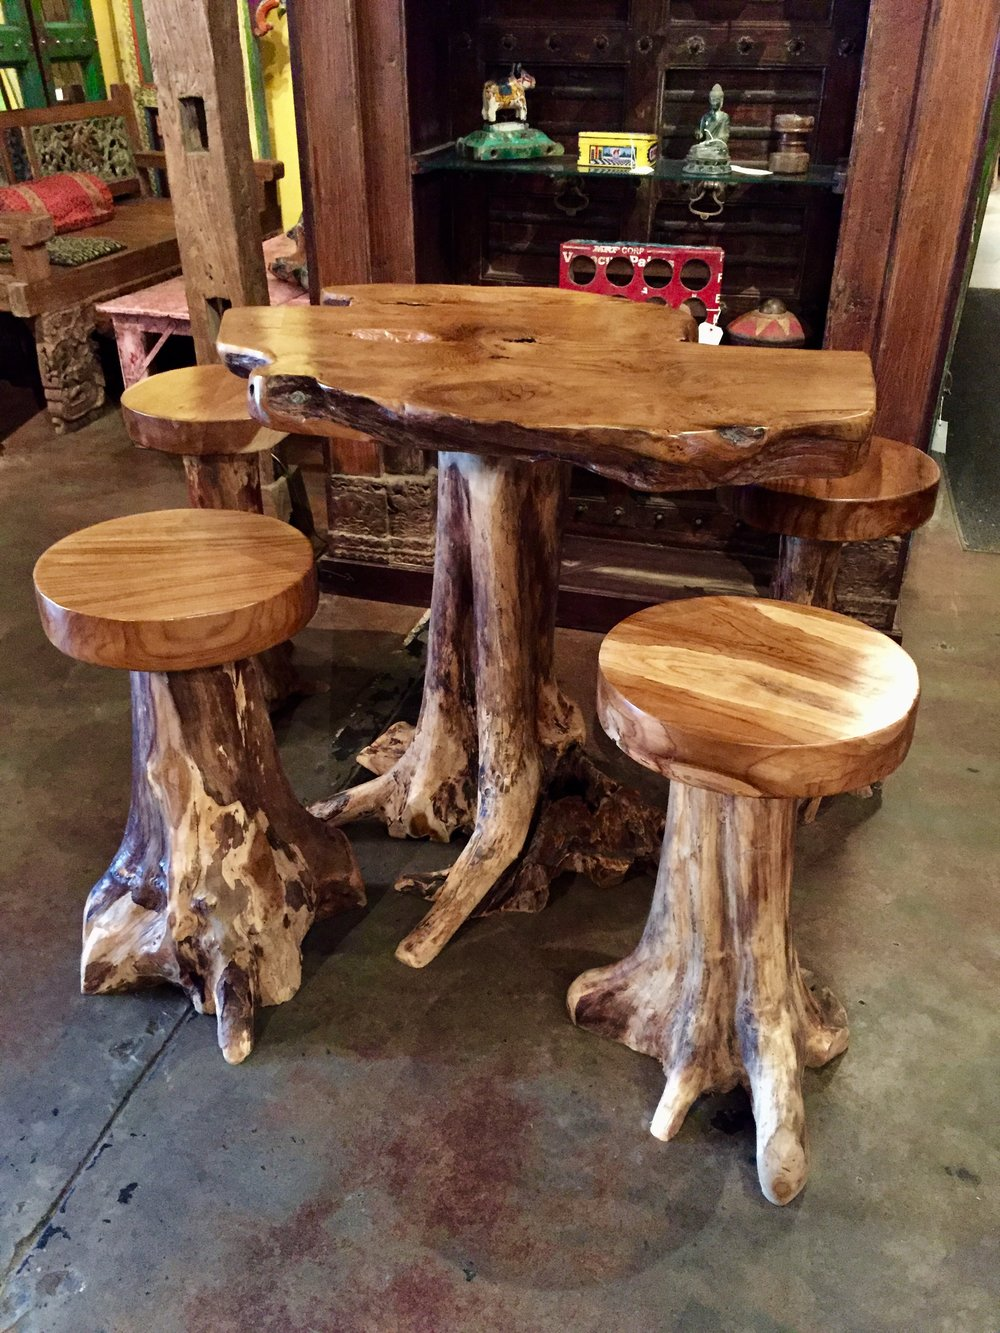 Balinese Teakwood root pub table set.   includes four stools and table.  $1995.00  SOLD OUT - MORE ON THE WAY   TBS-01